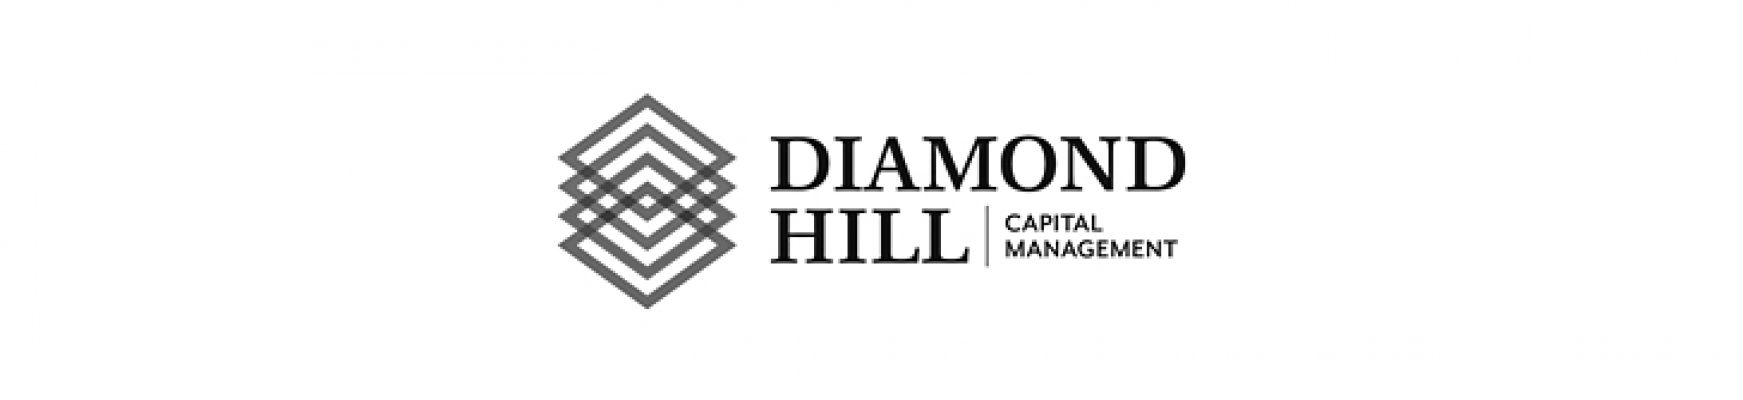 diamond-hill